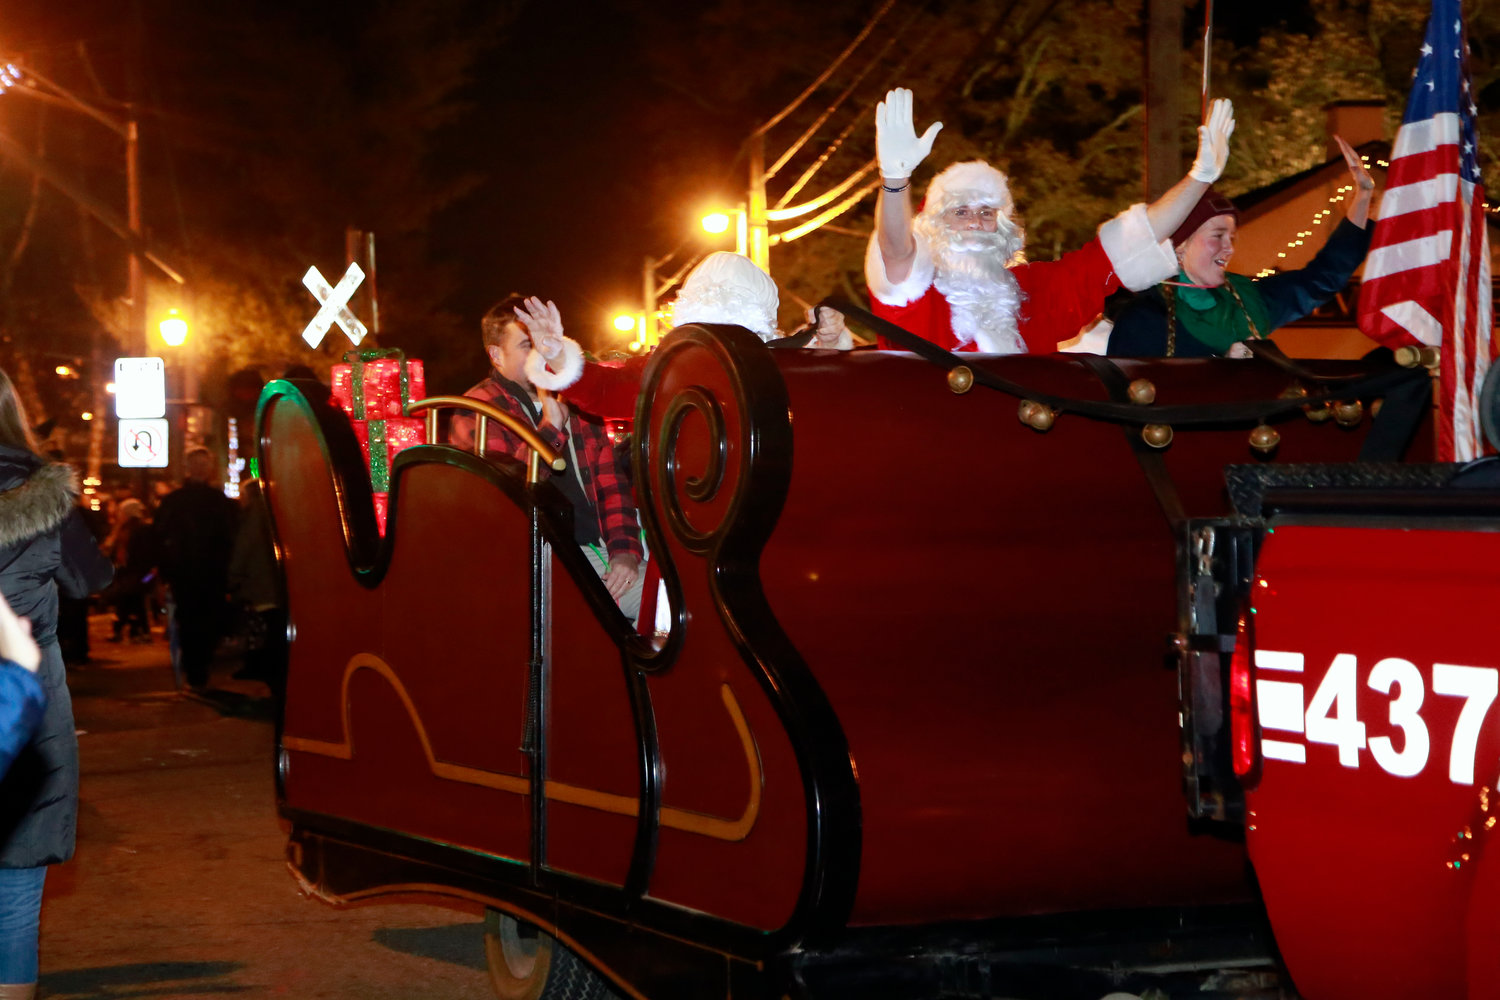 Santa Claus came to Malverne on his sleigh just in time for the village's tree lighting last Saturday.